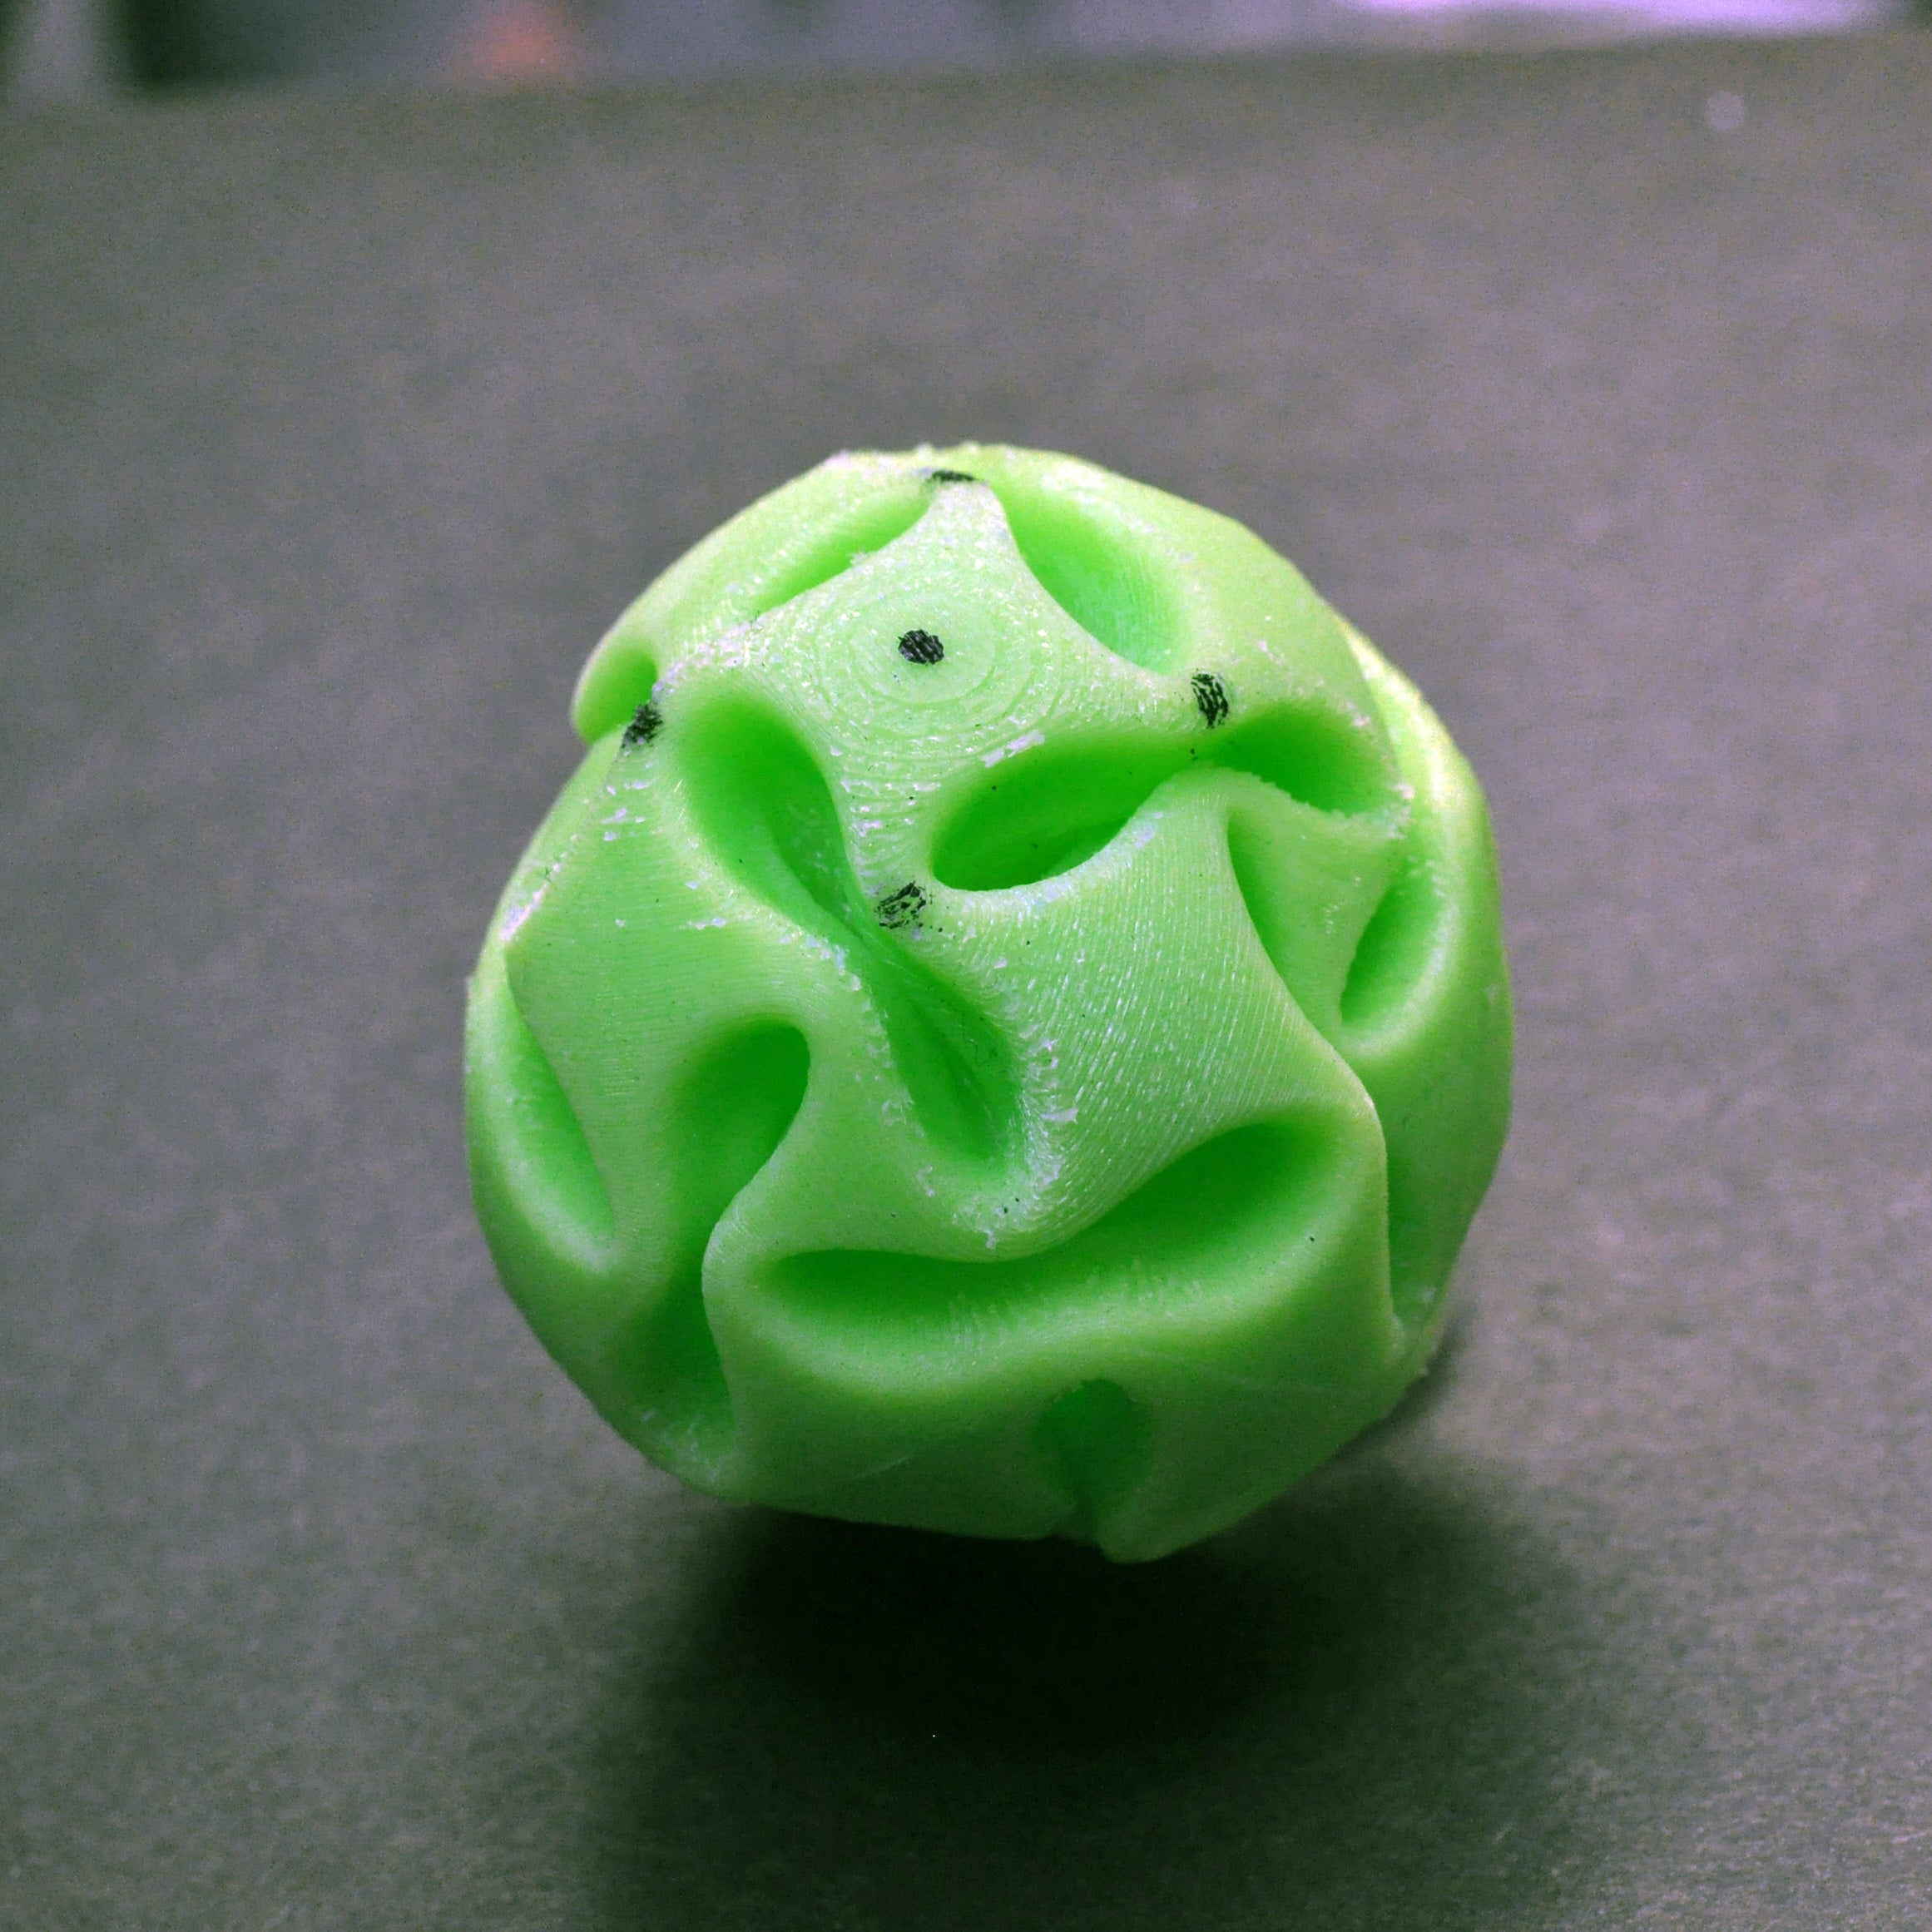 Meet 'Buckliball,' a New Class of Engineered Structure Inspired By a Toy